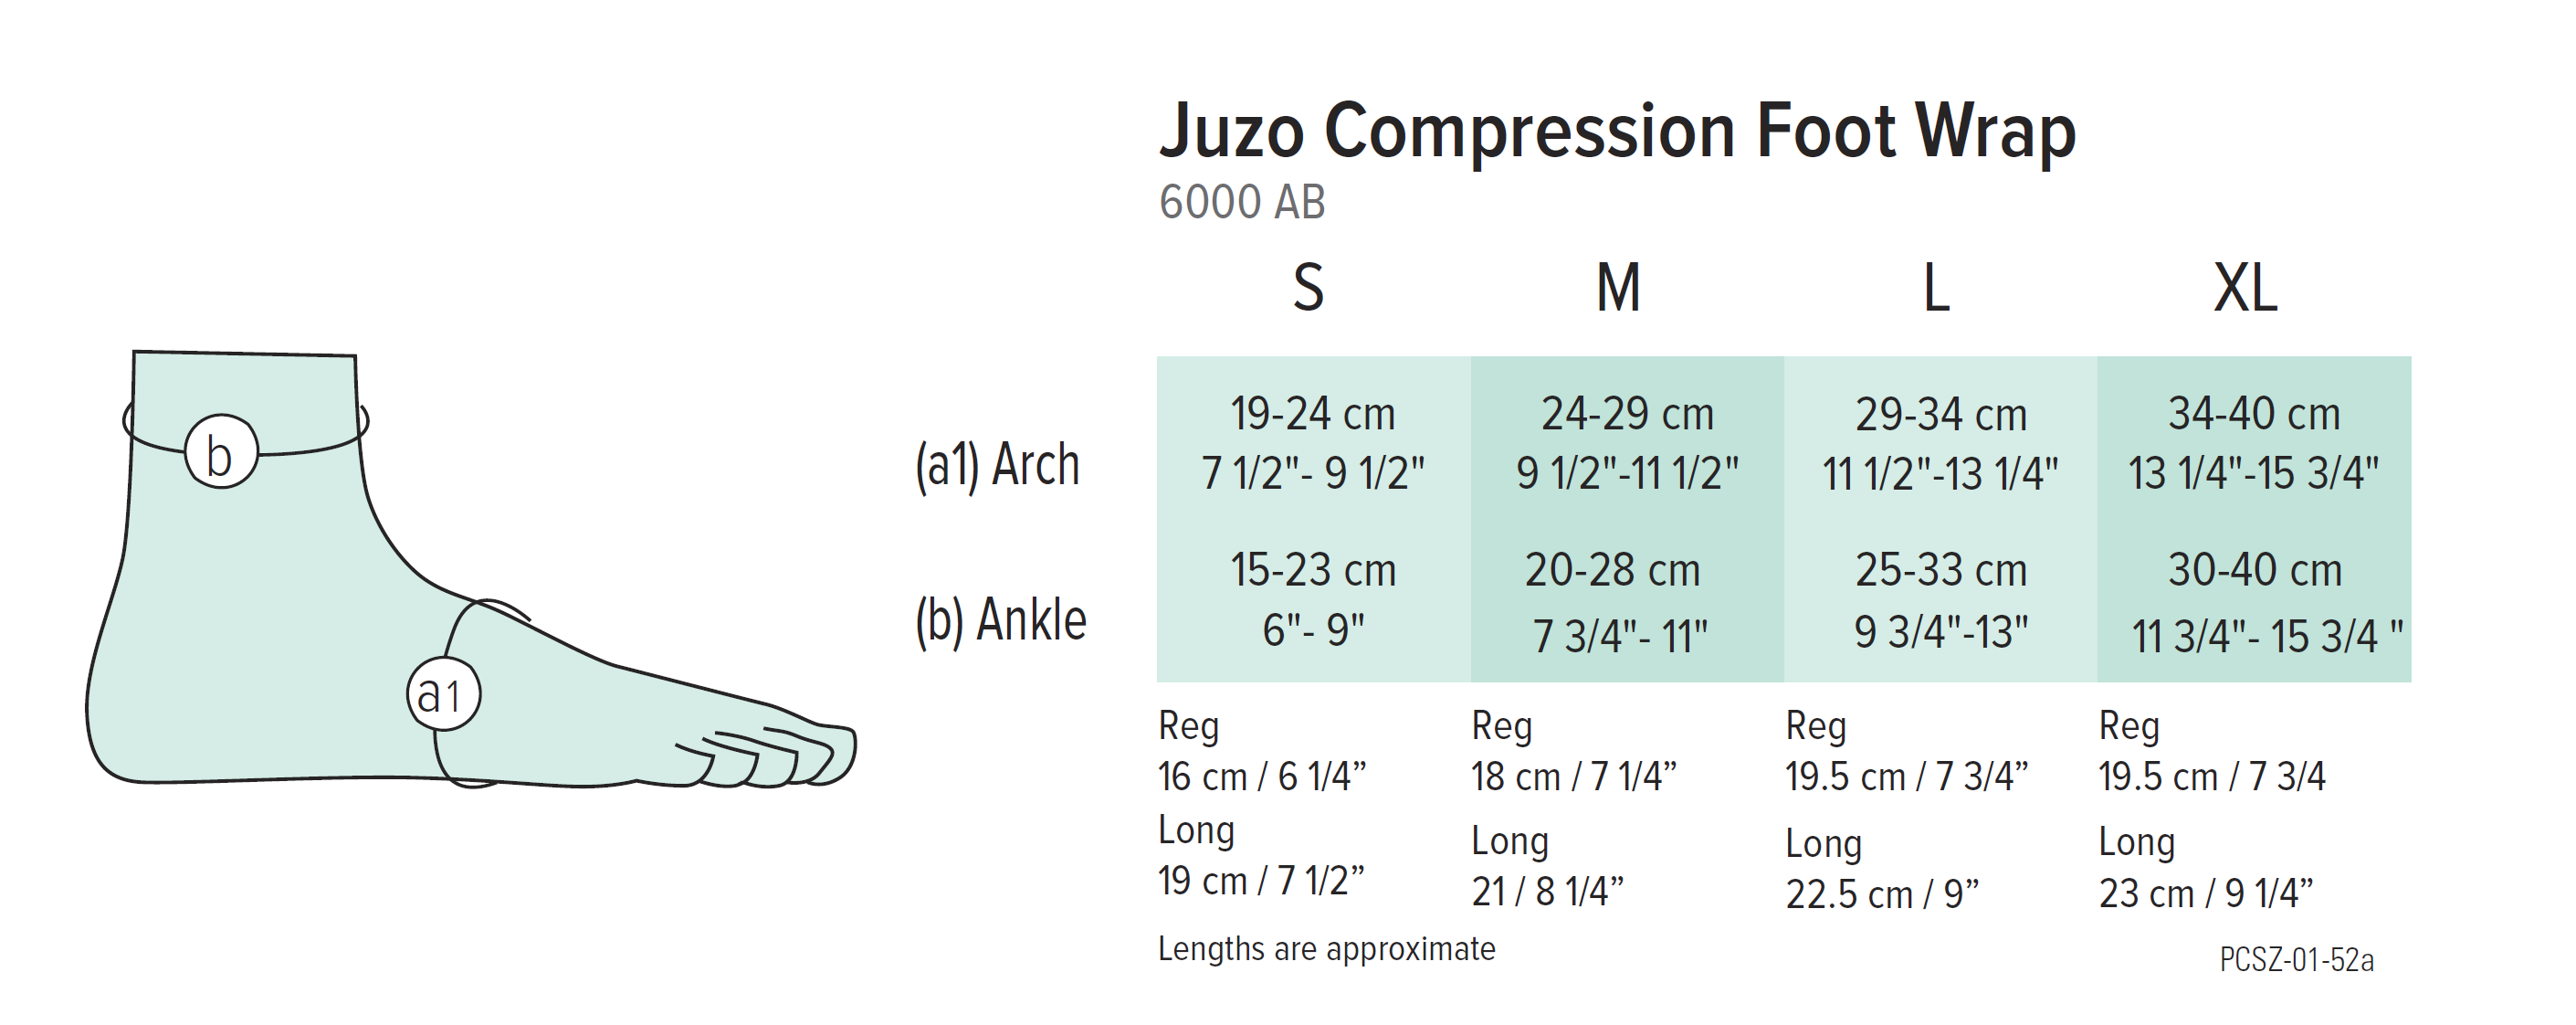 Juzo Foot Compression Wrap Size Chart